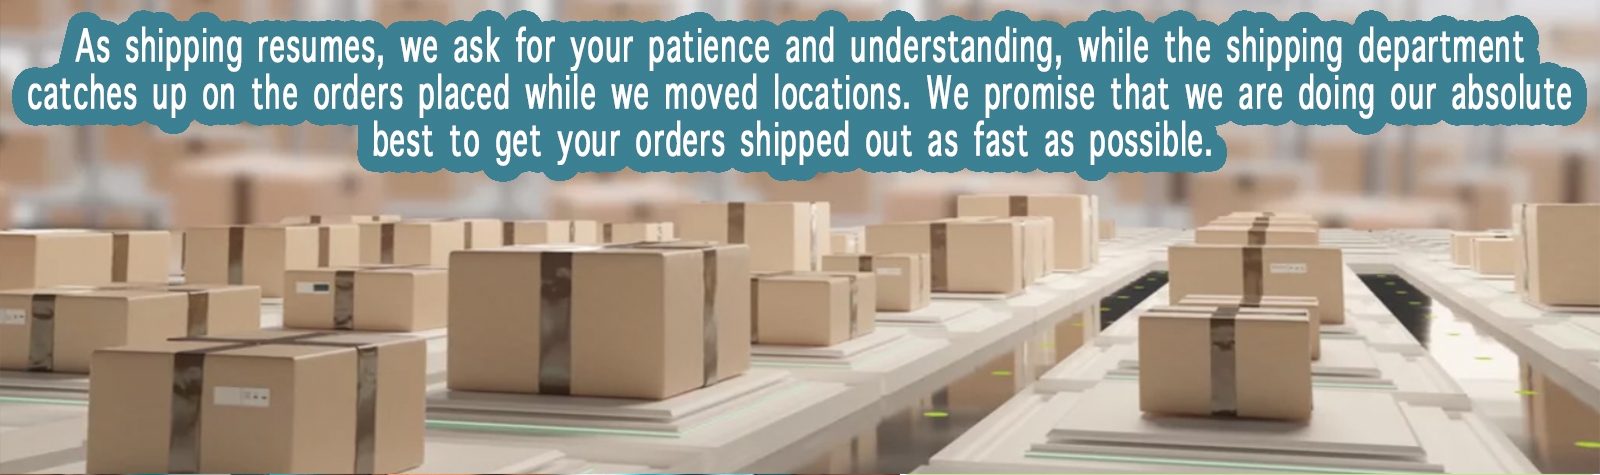 As shipping resumes, we ask for your patience and understanding, while the shipping department catches up on the orders placed while we moved locations. We promise that we are doing our absolute best to get your orders shipped out as fast as possible.